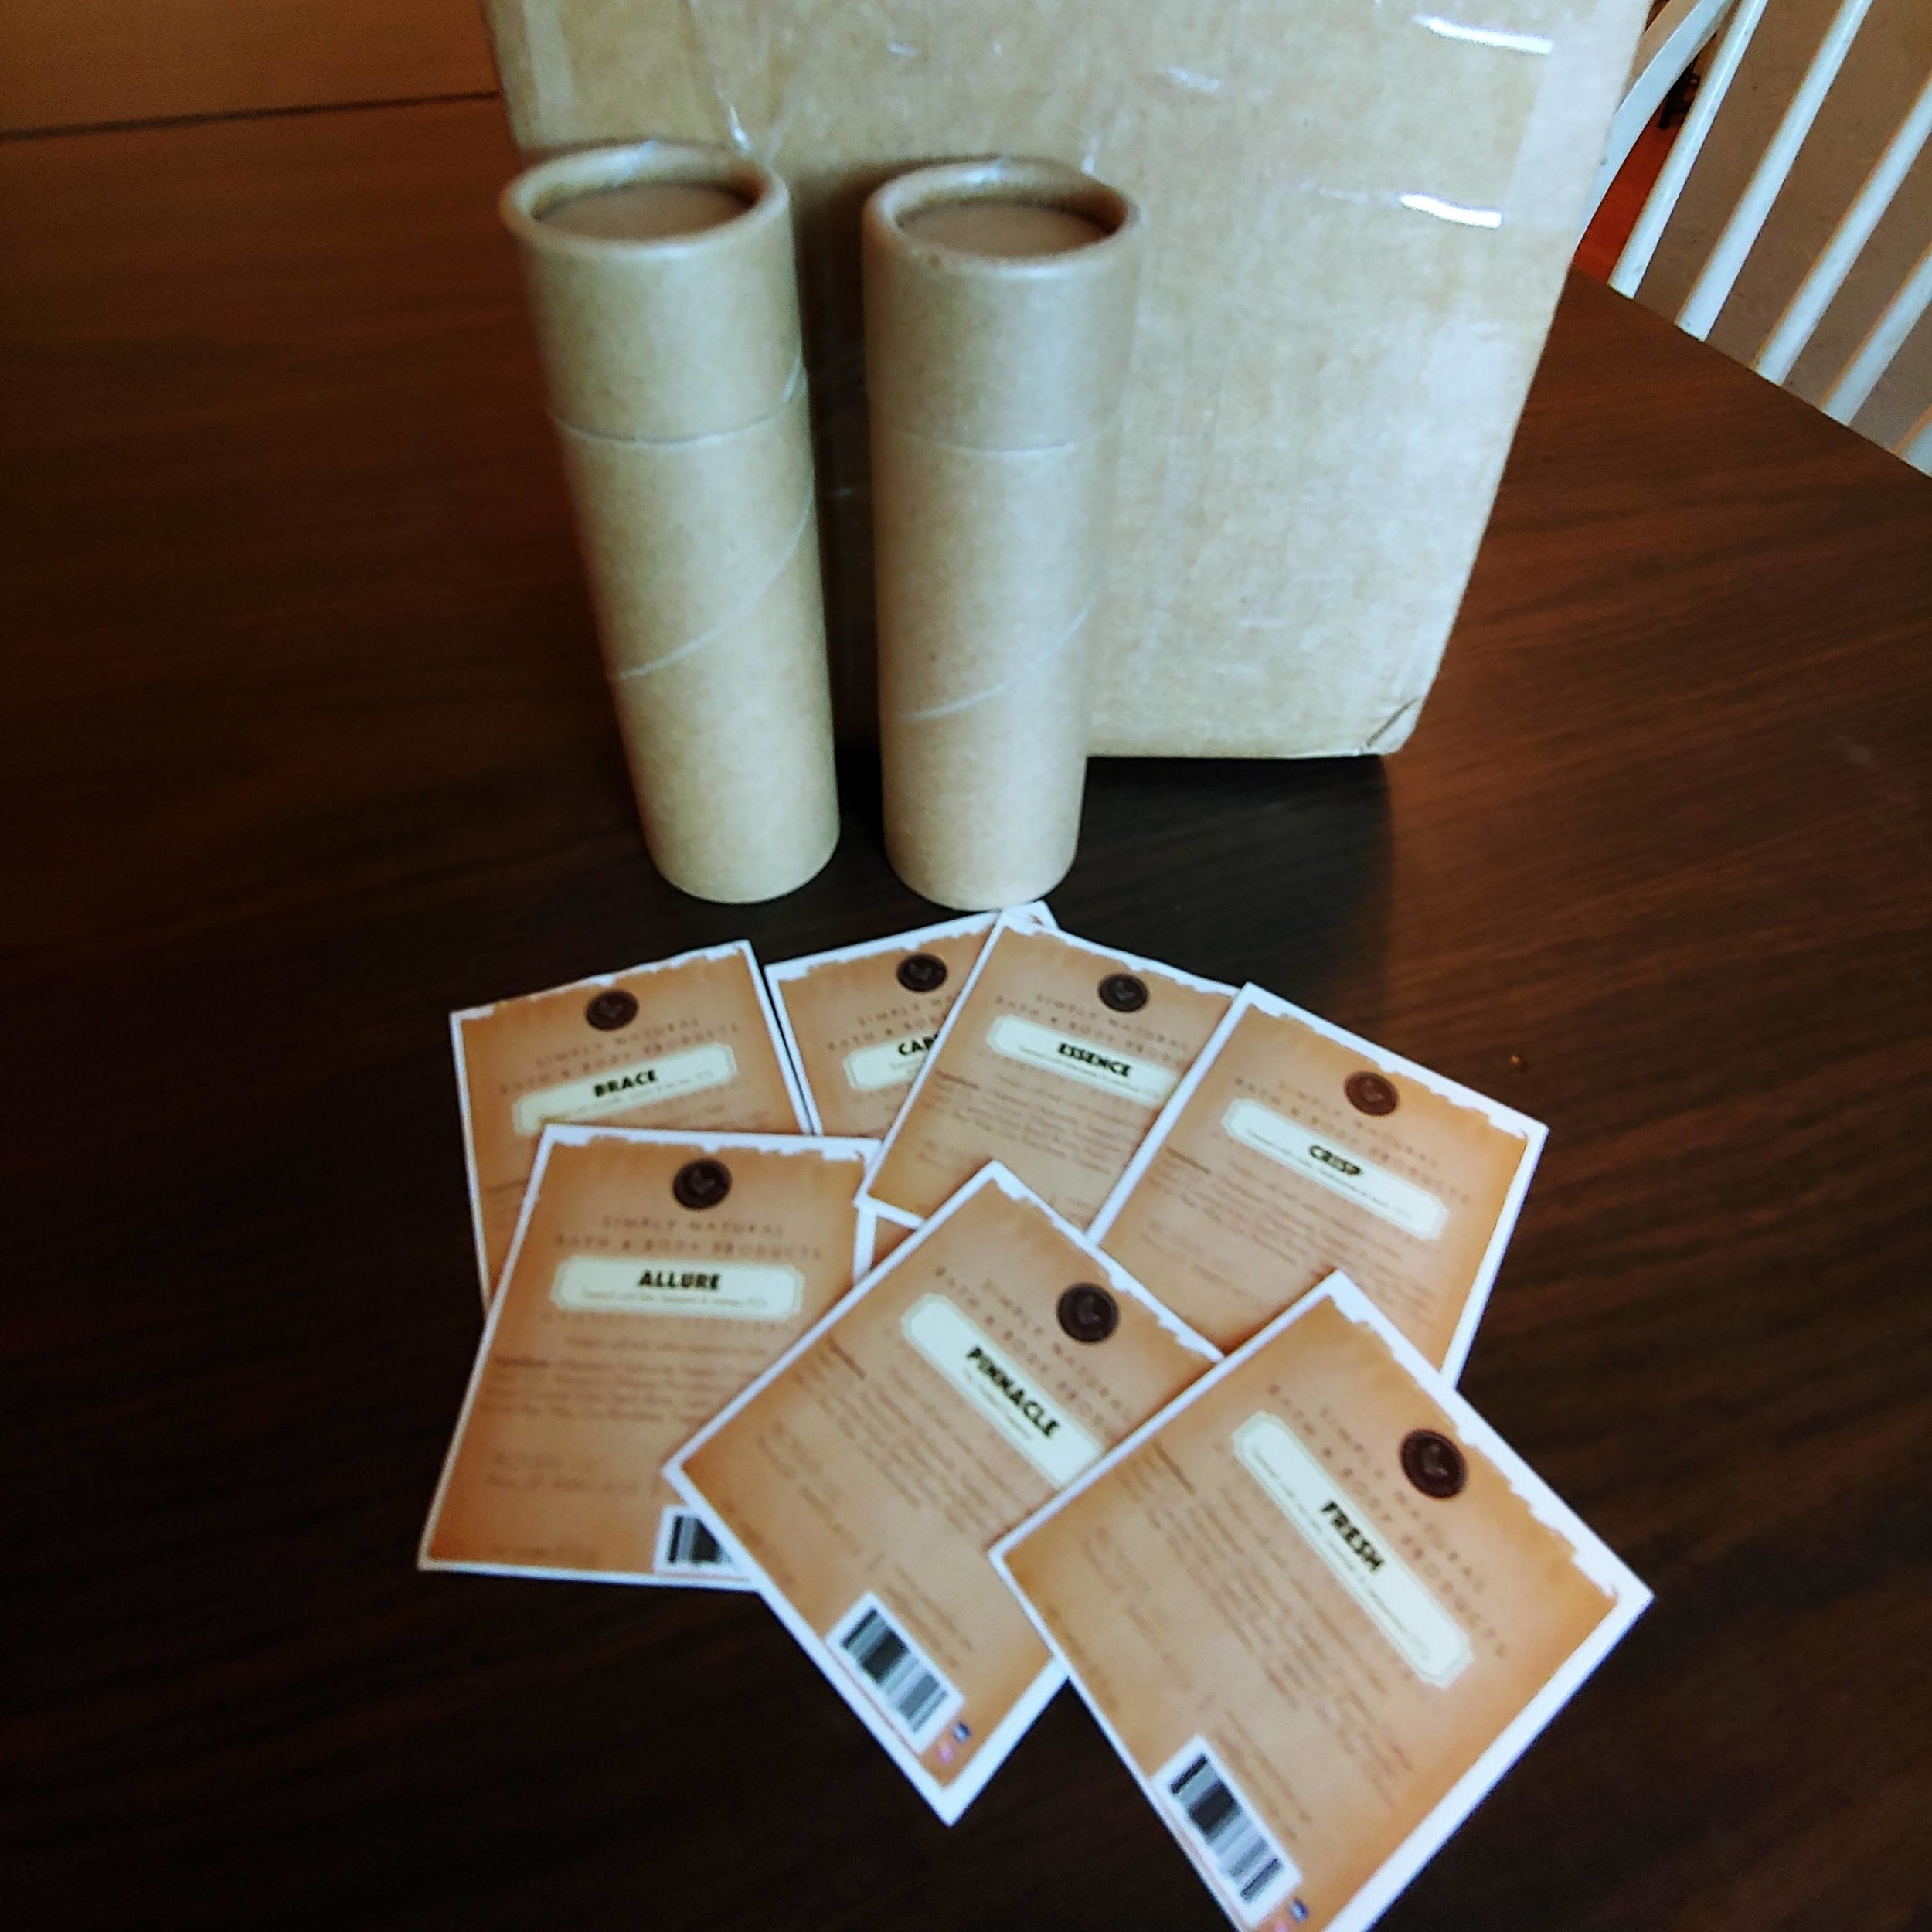 Cardboard packing and labels for MagneZinc deodorant